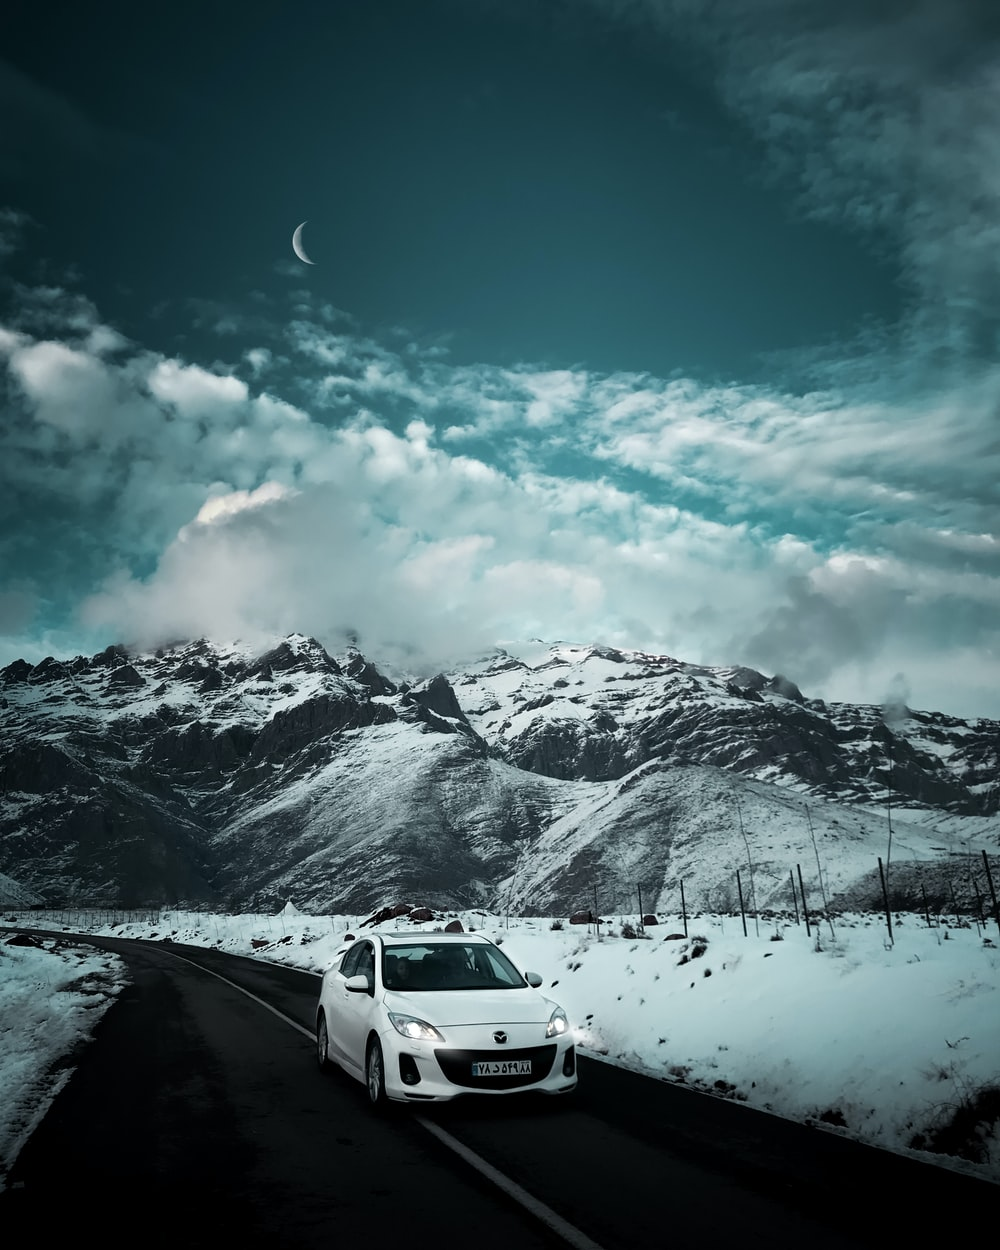 white car on snow covered ground under blue sky and white clouds during daytime